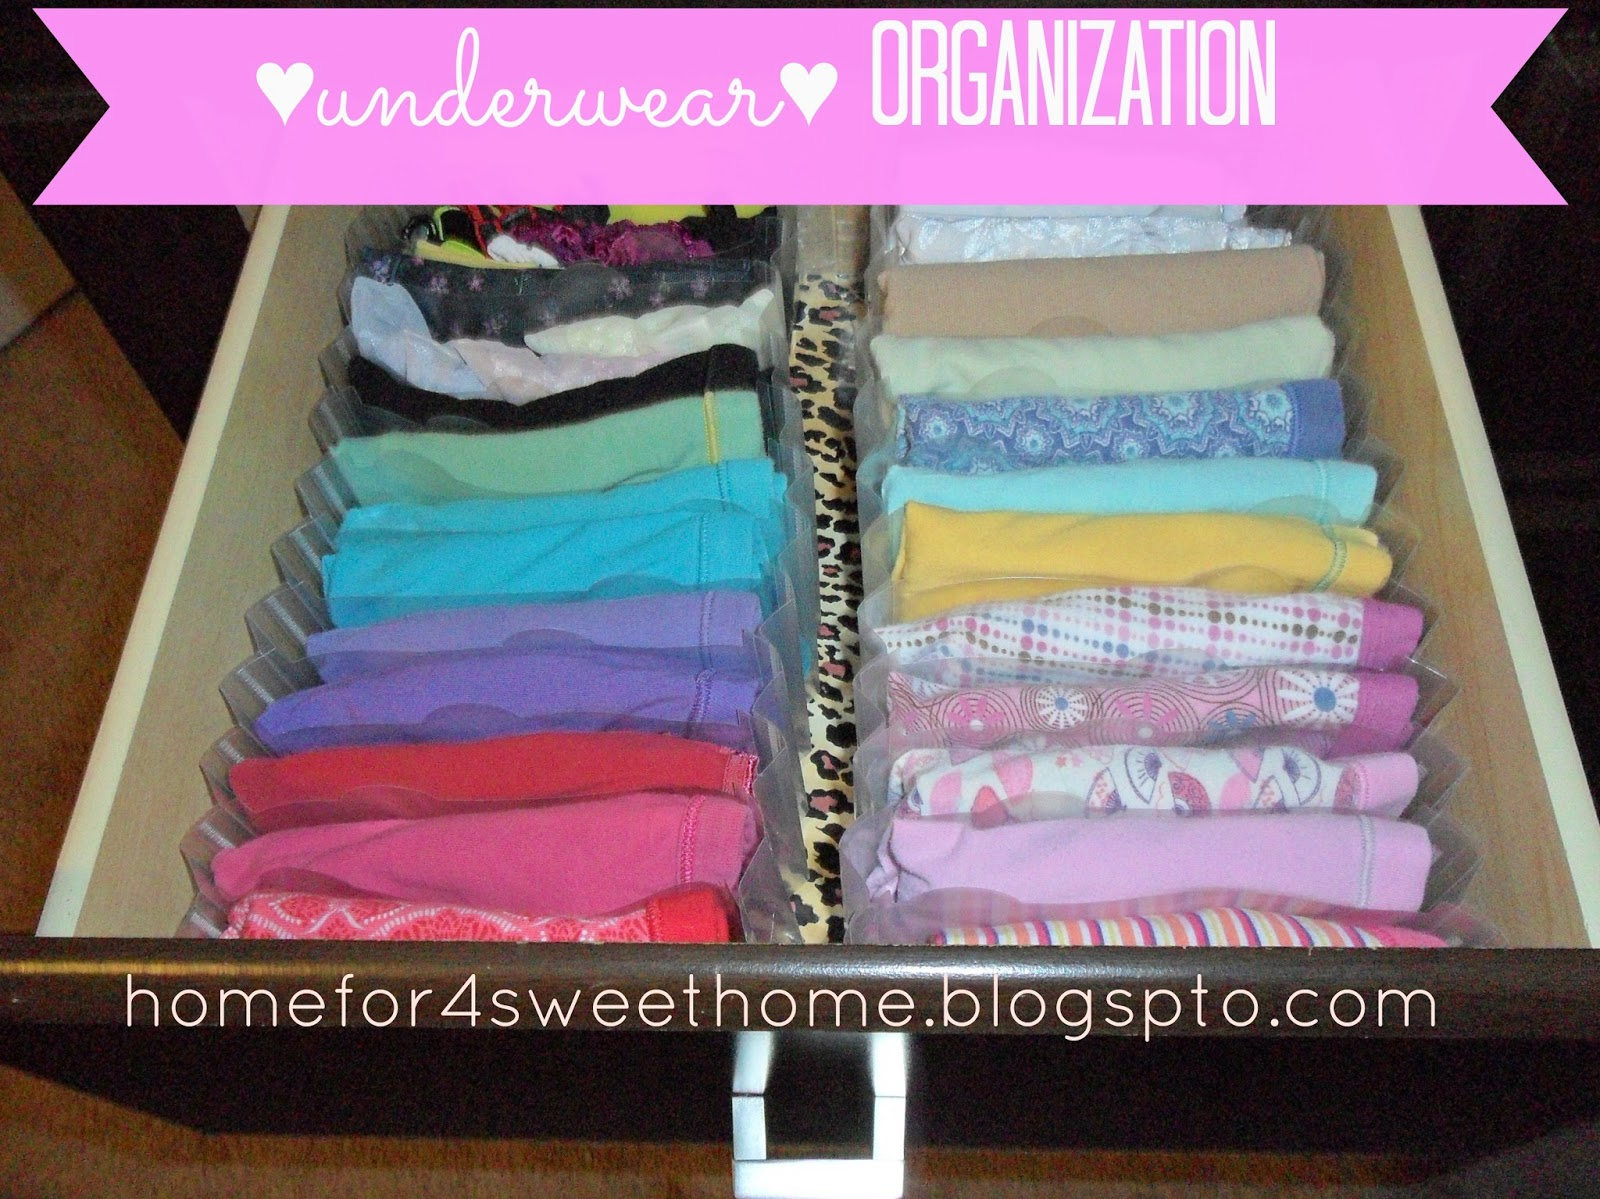 Home for4 sweet home spring cleaning organizing underwear like solutioingenieria Image collections